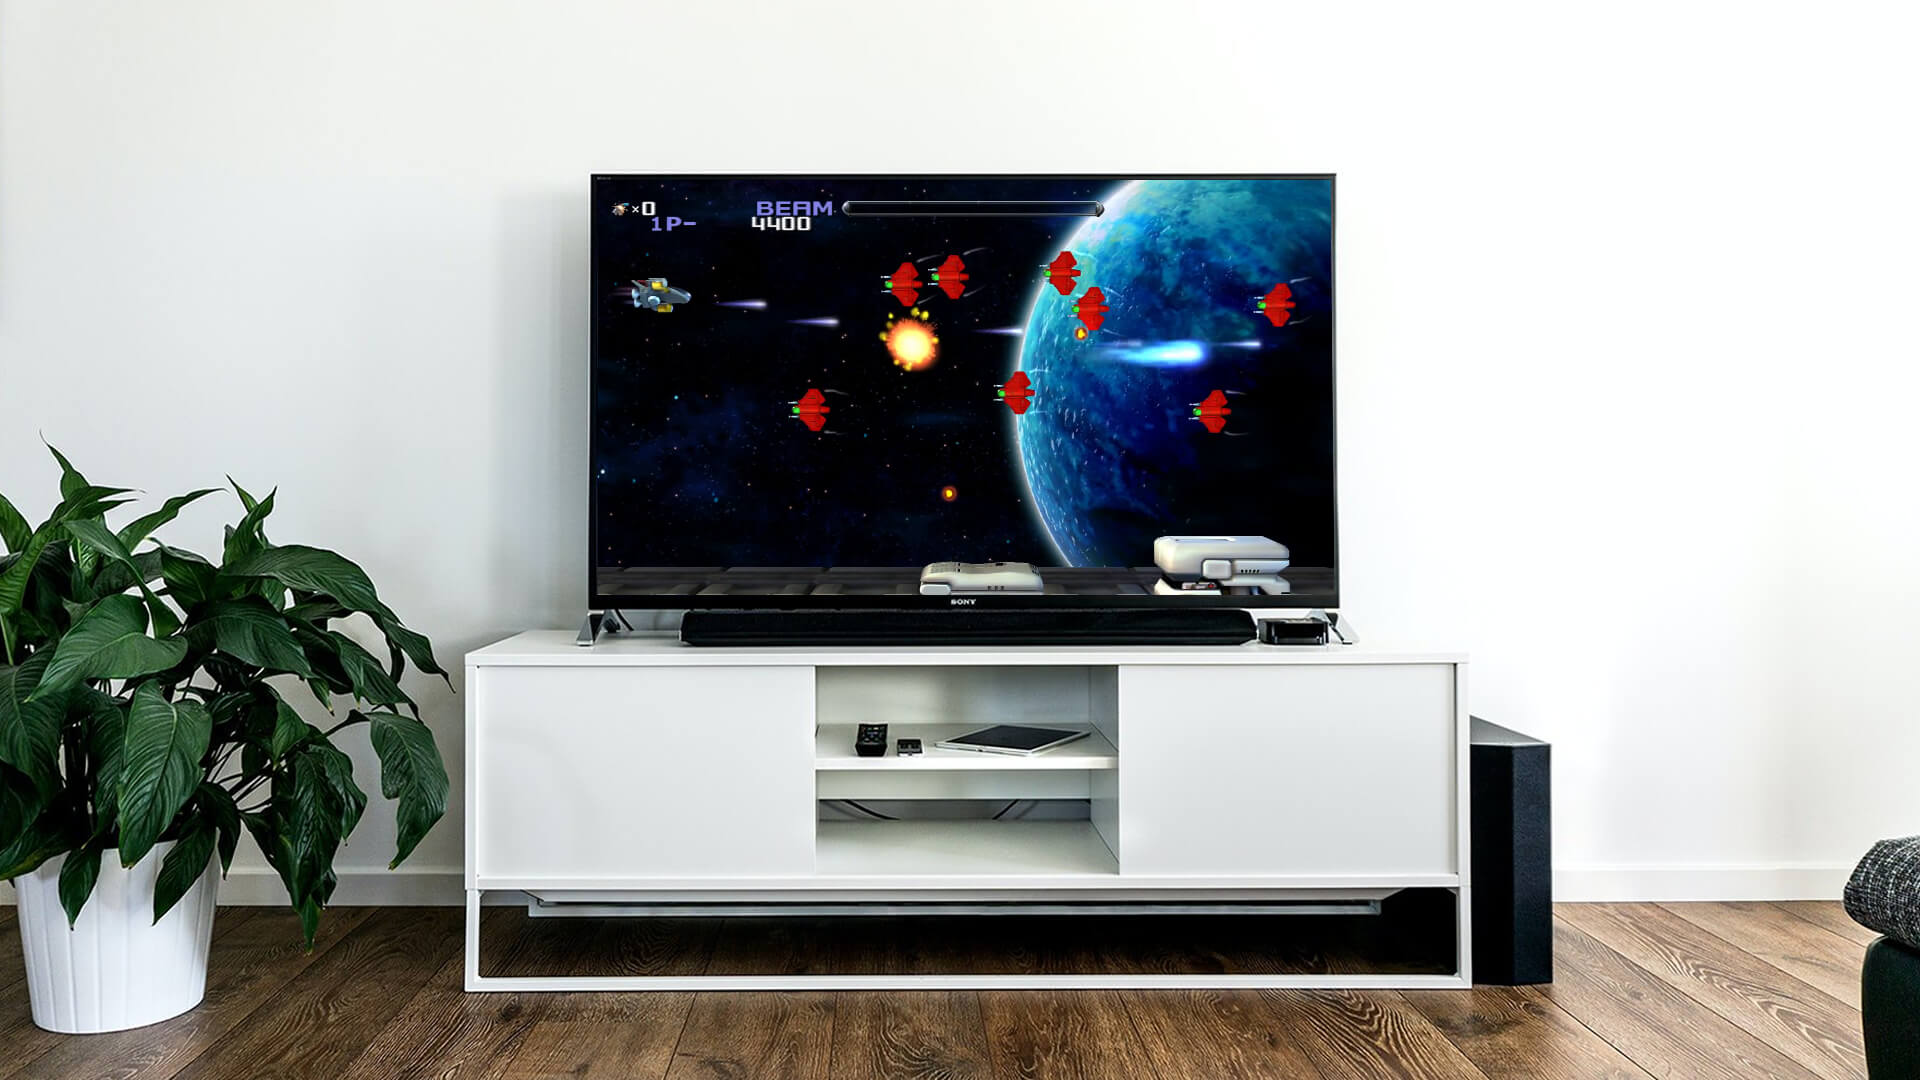 Image of R Type game in modern flat screen TV in living room.